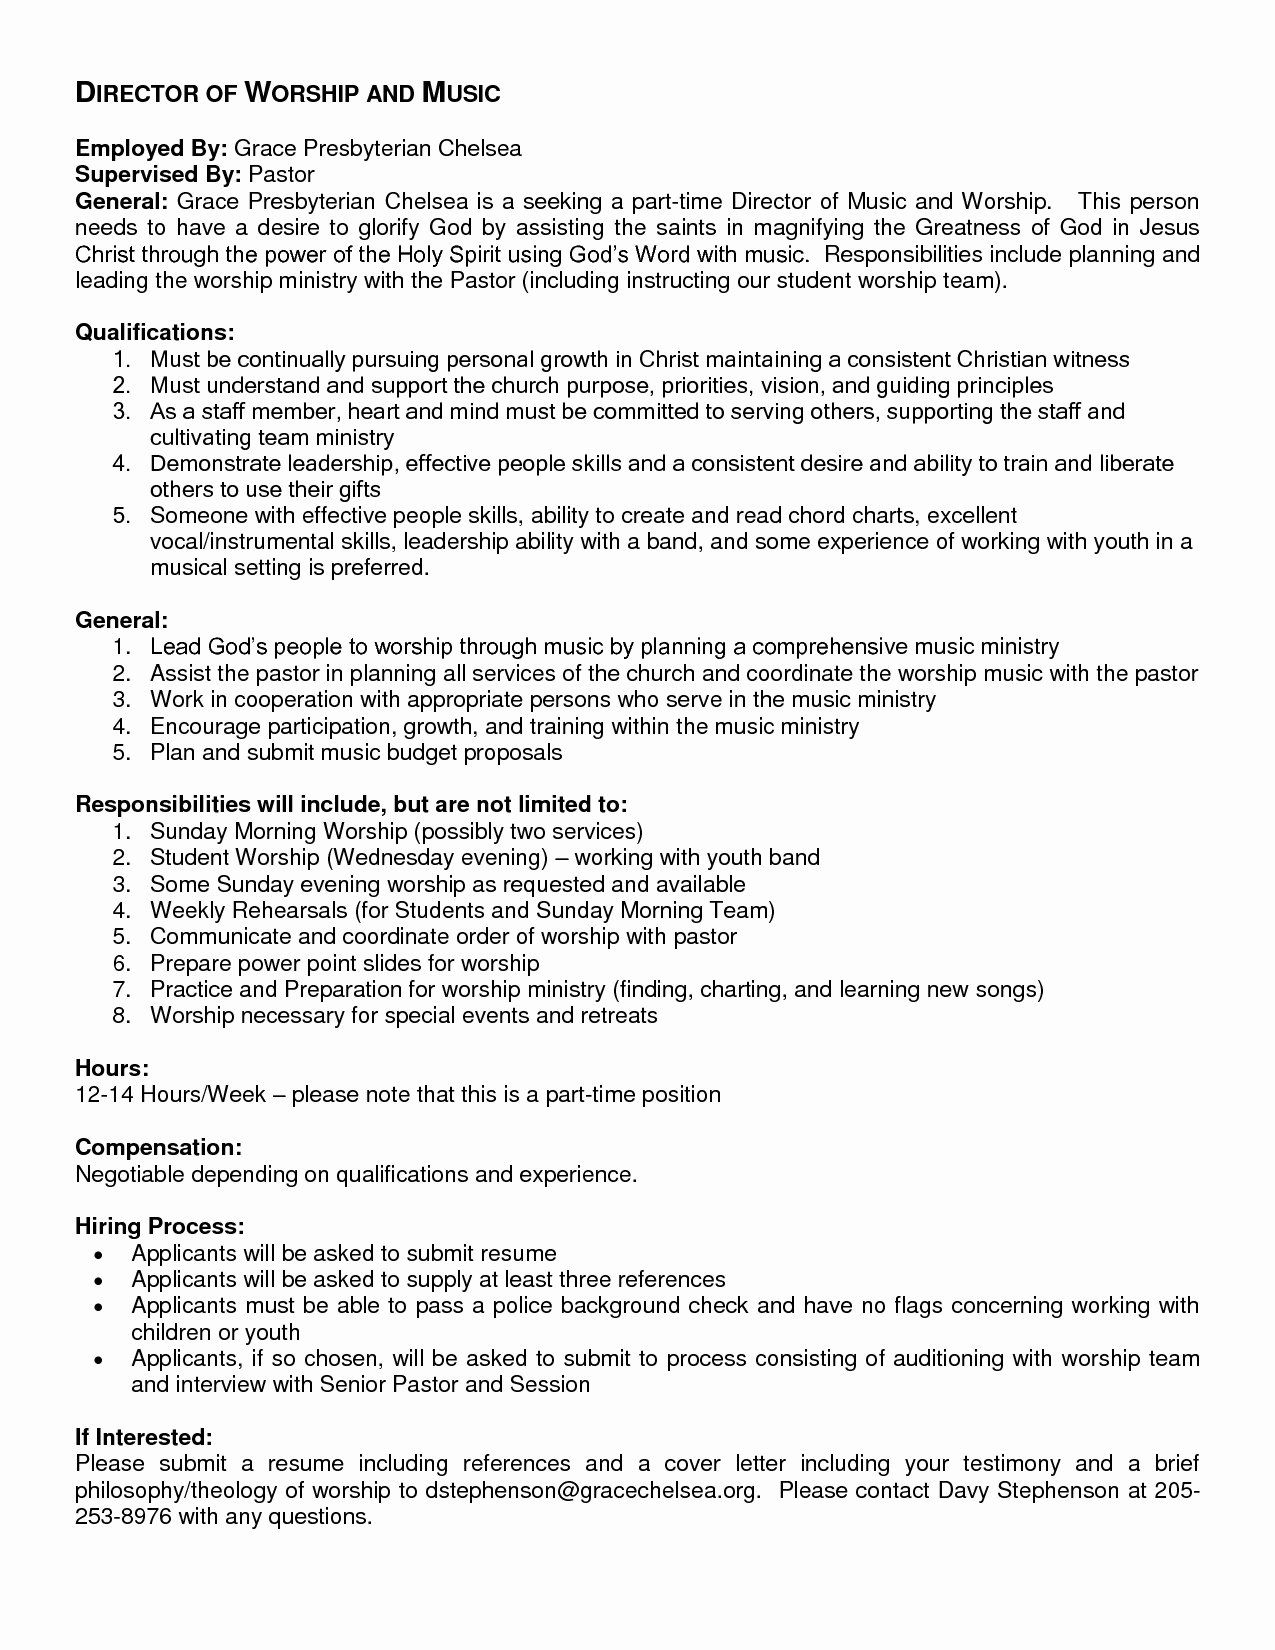 Youth Ministry Budget Template Luxury Proposal Letter For Youth Ministry Budget Template Words For Teacher Resume